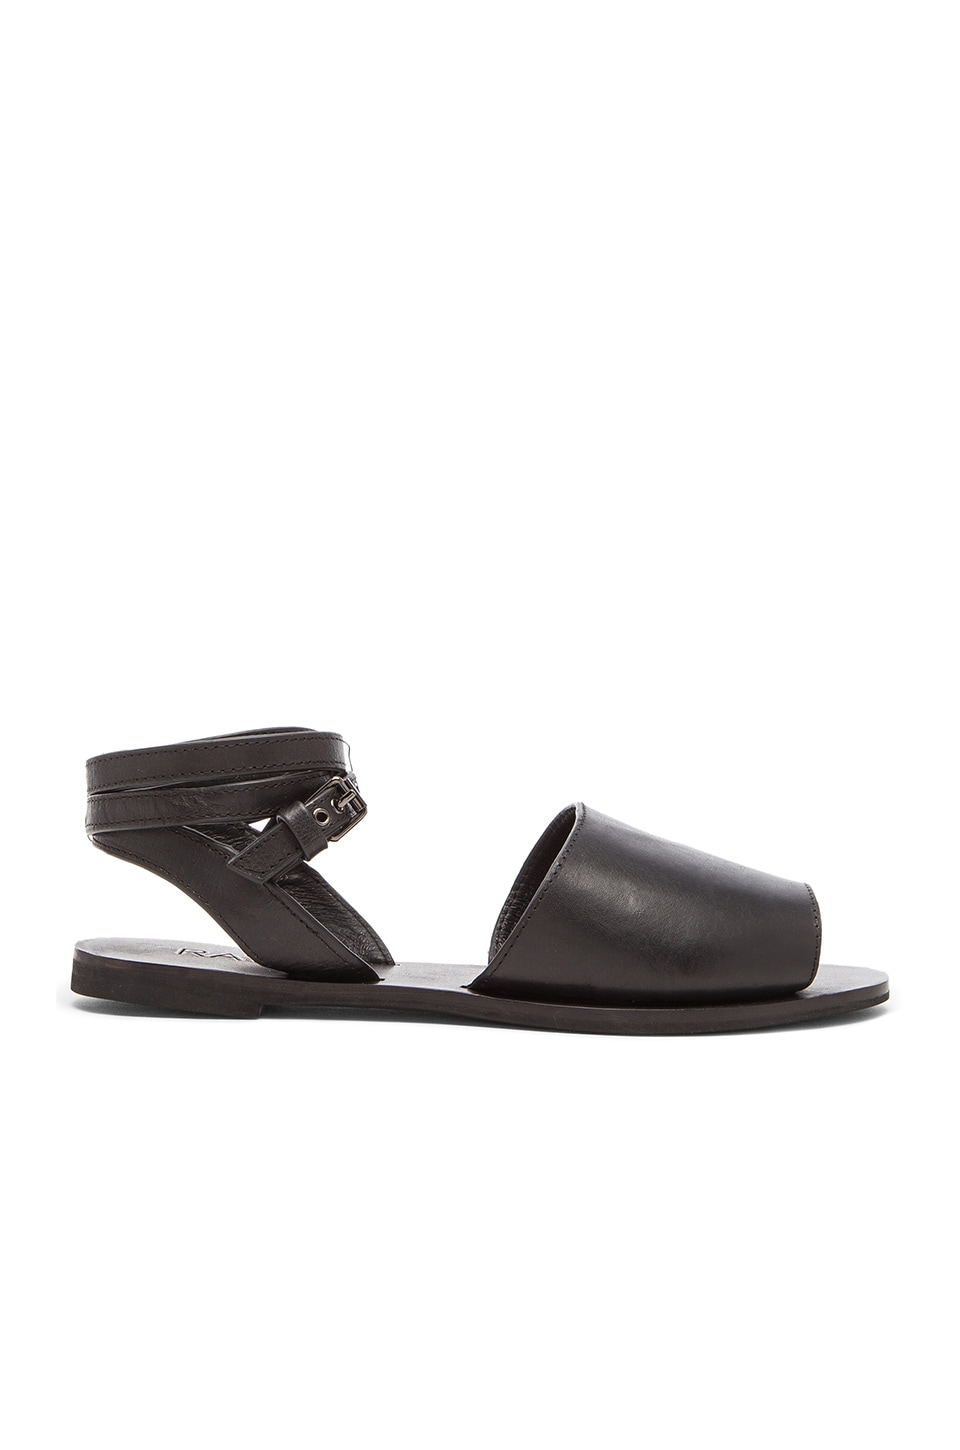 RAYE Savannah Flat in Black